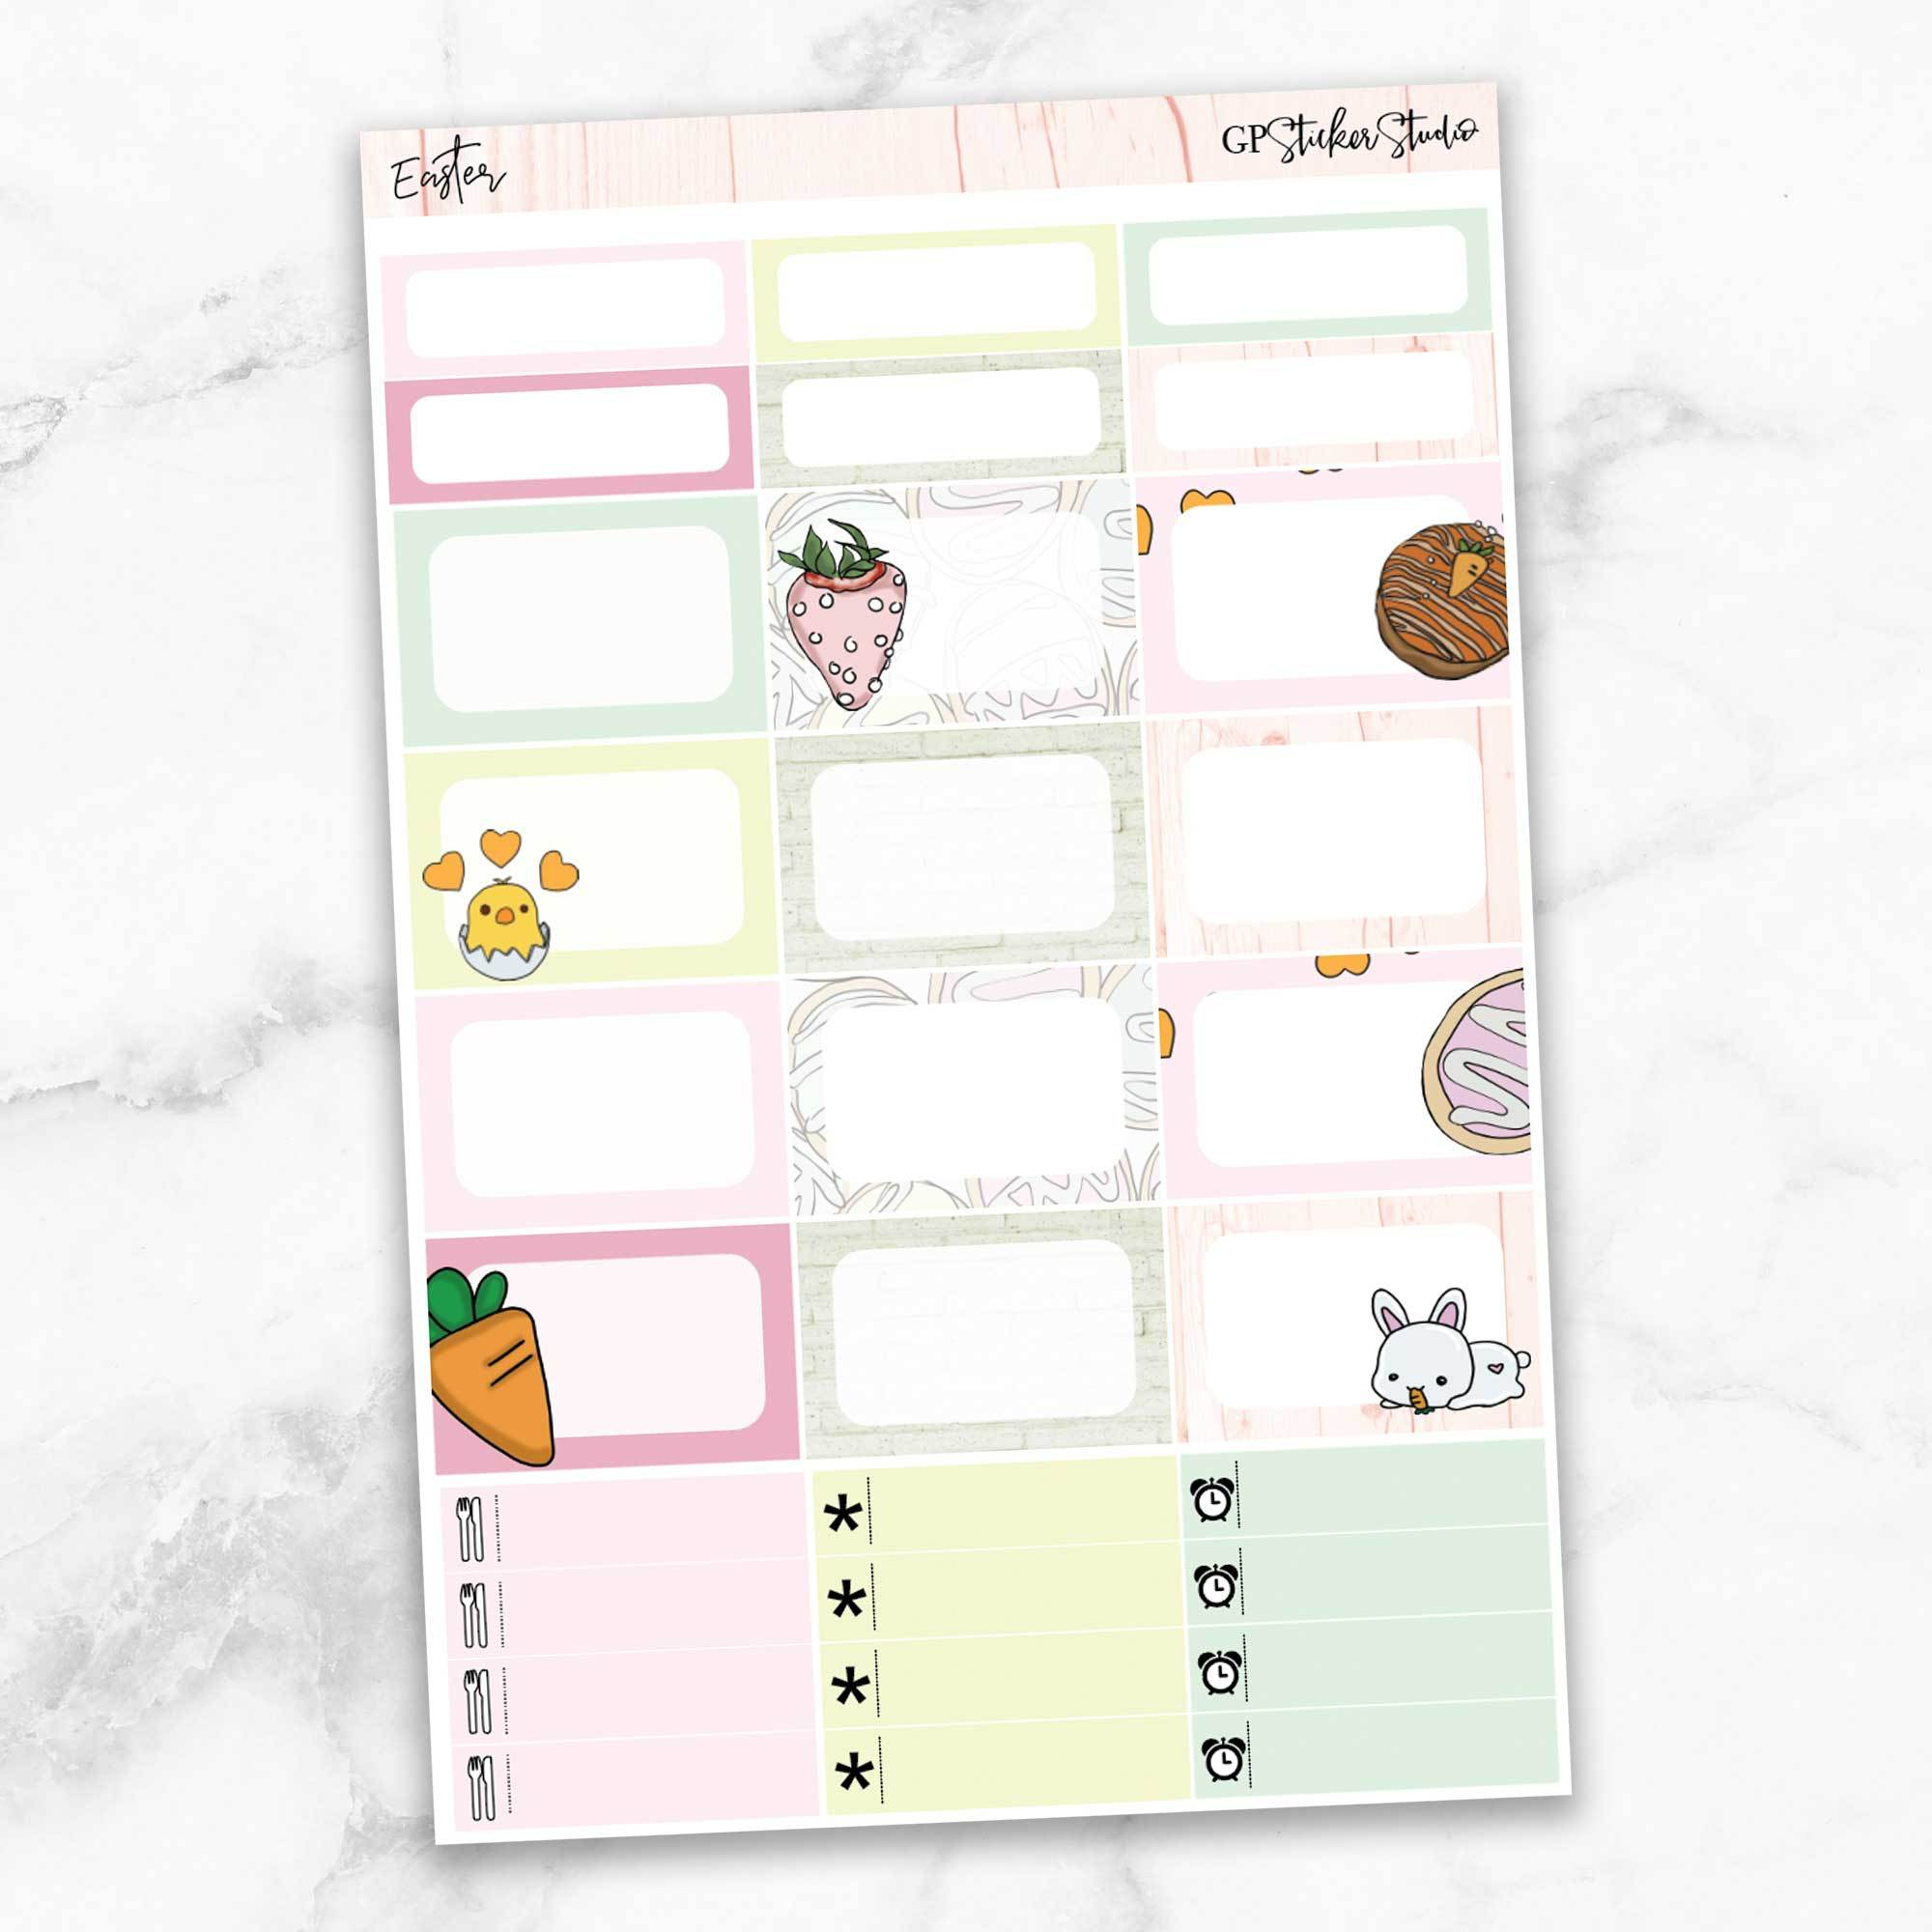 EASTER Half Boxes Planner Stickers-The GP Studio